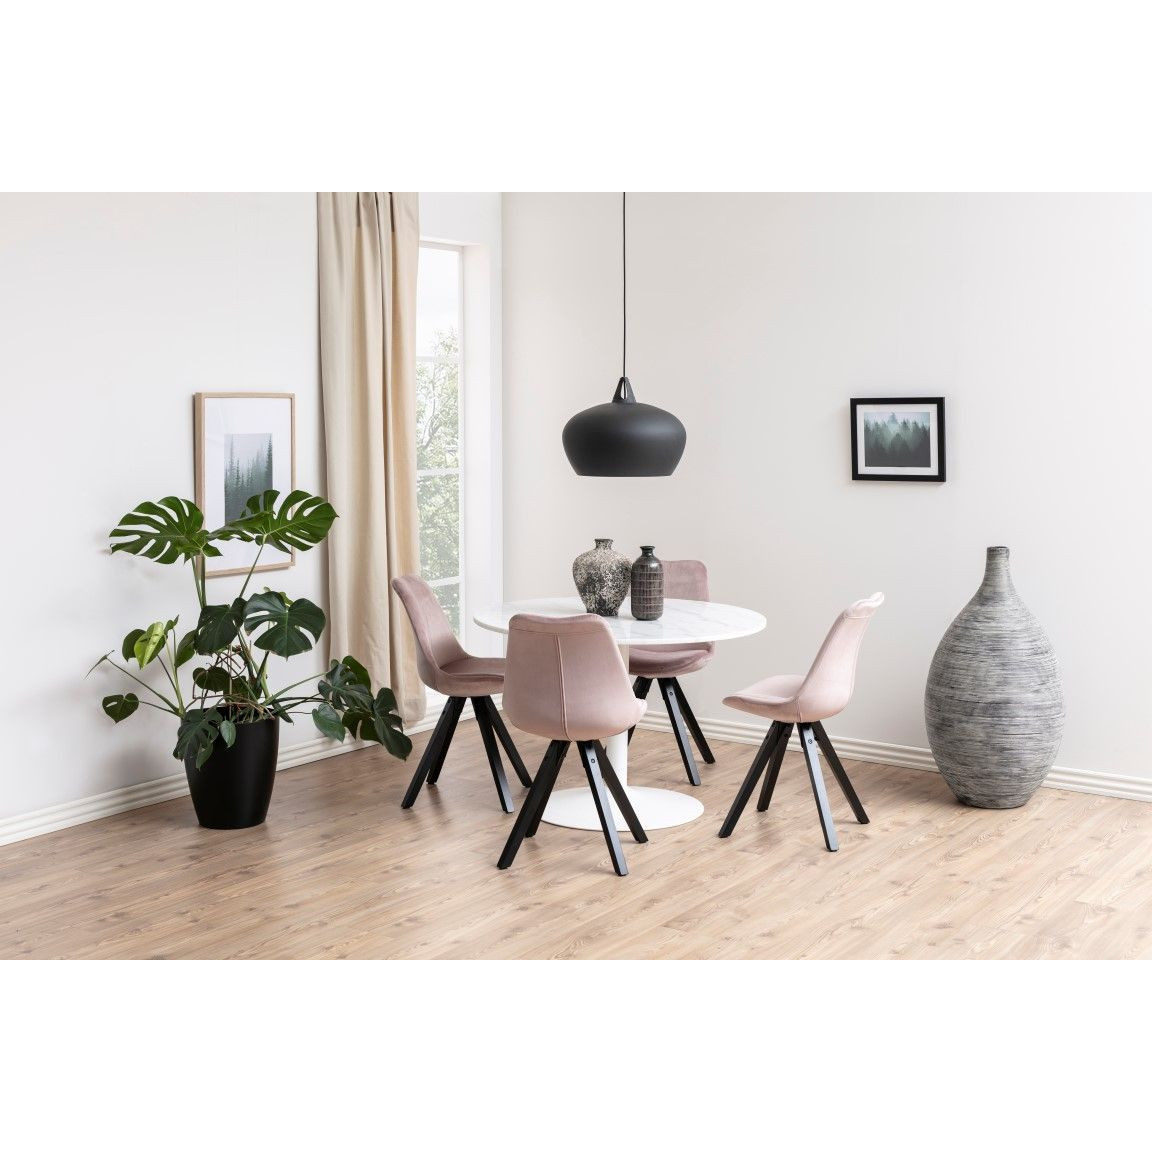 Set of 2 Dining Chairs Nida   Pink + Rubber Wooden Legs